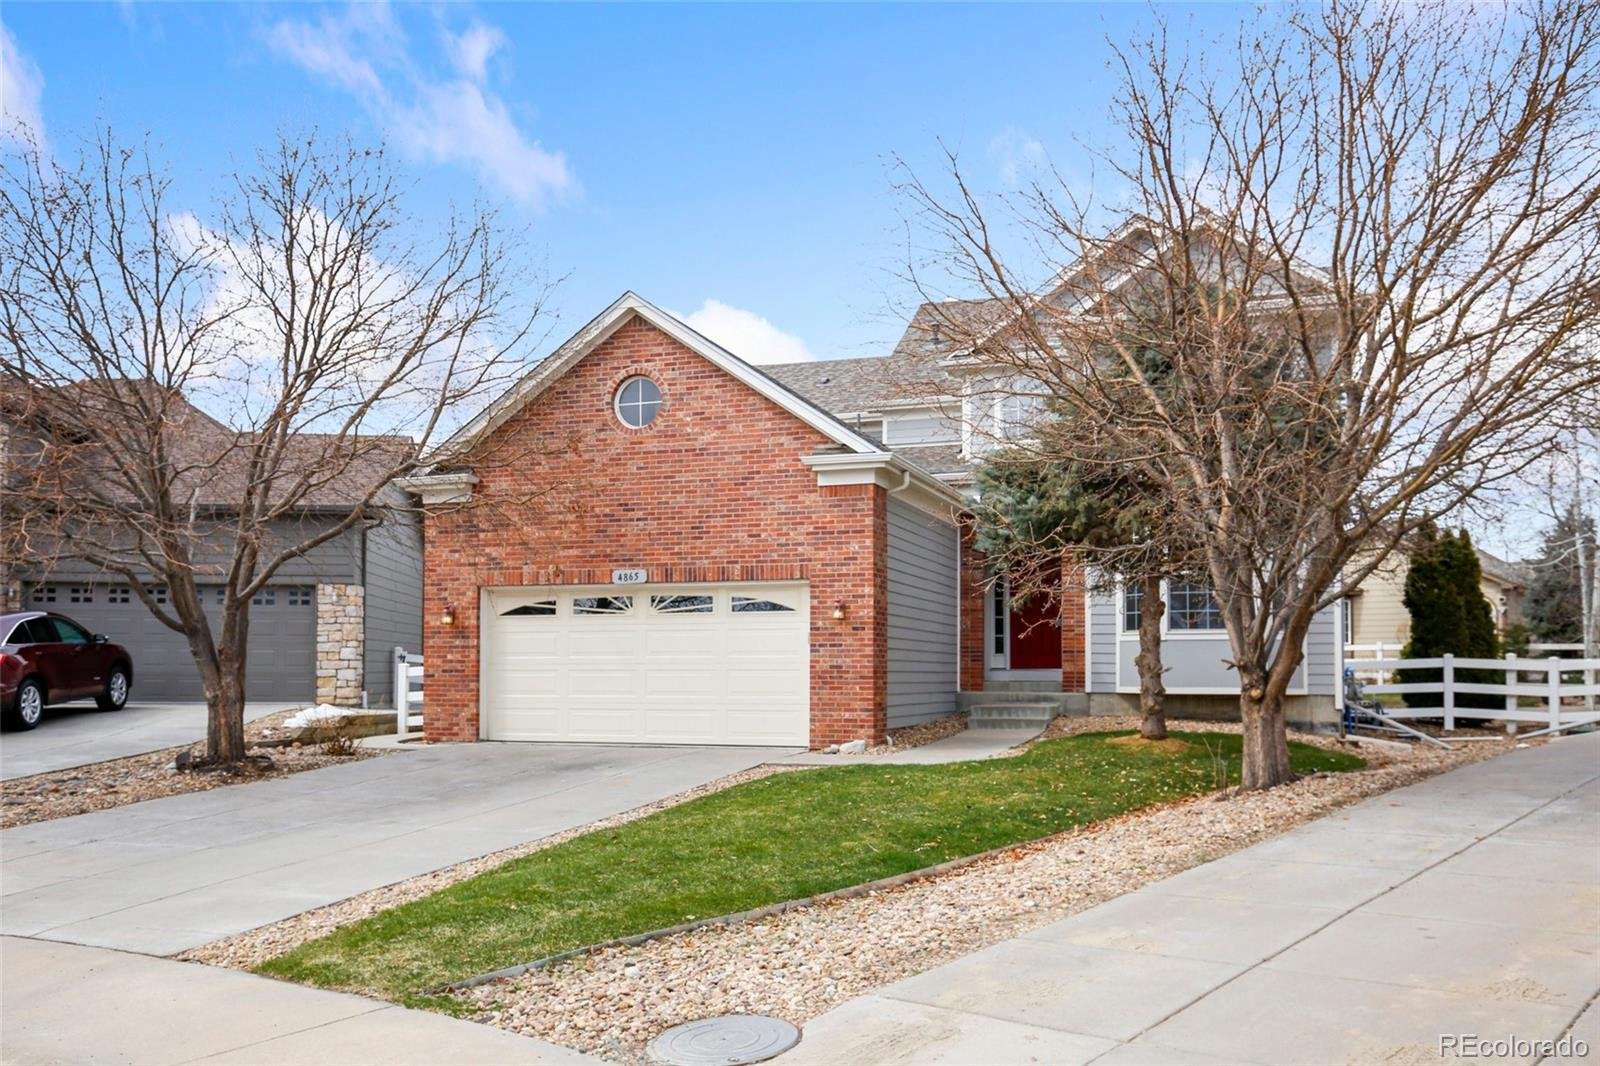 MLS# 7661027 - 2 - 4865 W 116th Court, Westminster, CO 80031